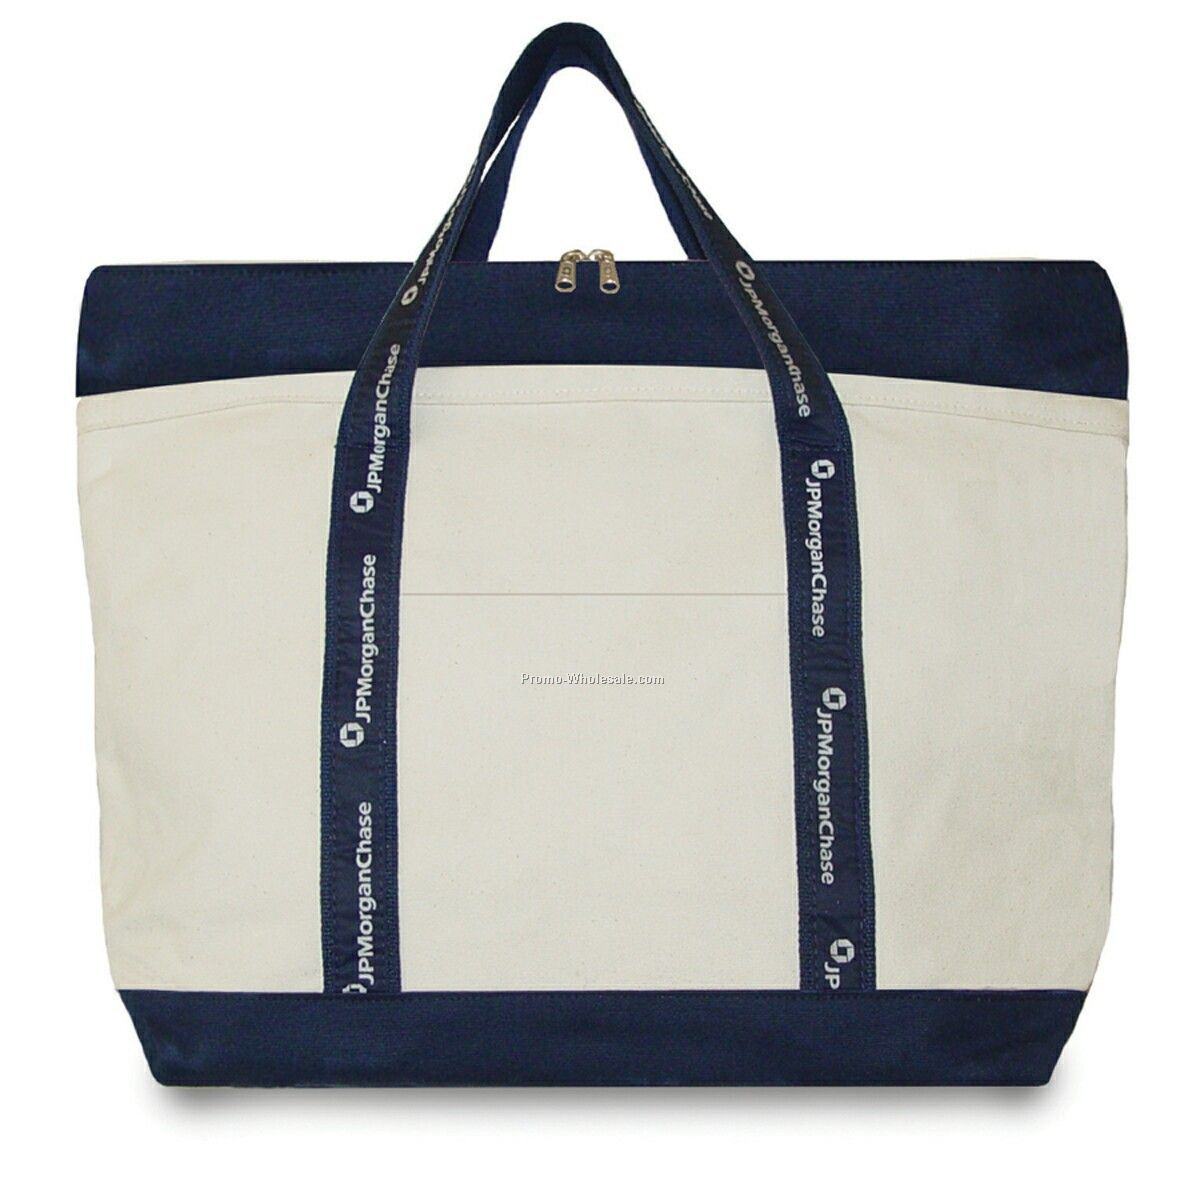 5m V/B Two-tone Tote With Deluxe Recessed Top Zipper And Motif Woven Ribbon